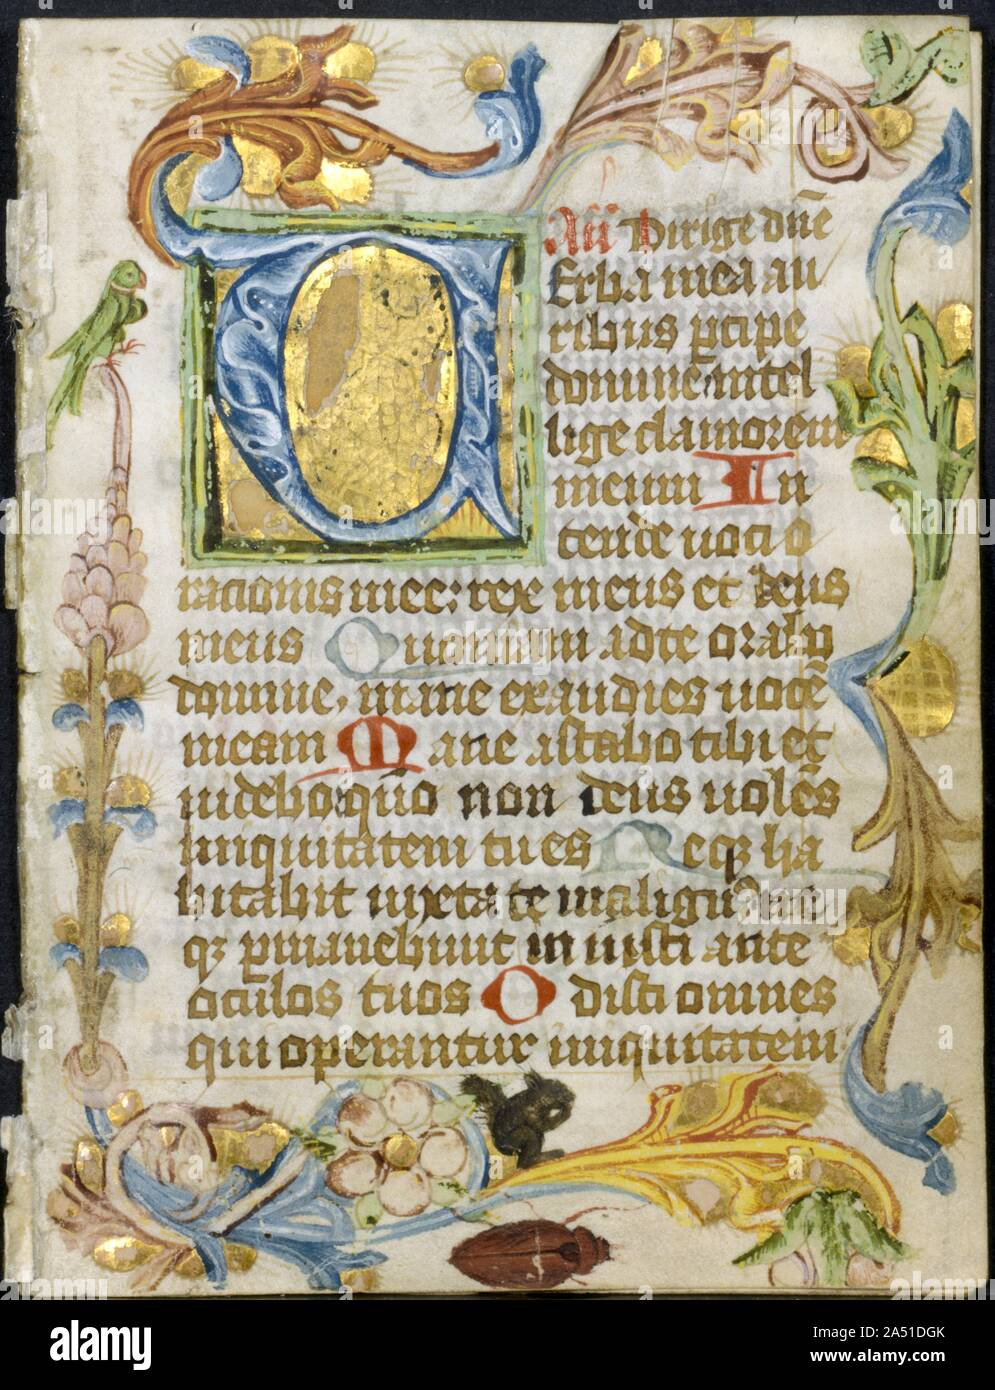 Leaf from a Book of Hours: Initial V with Floral Border, c. 1460-1500. Every medieval book of hours contained a section known as the Office of the Dead. This section was usually inserted toward the back of the book following the penitential Psalms and litanies, which set a tone of contrition, penitence, and forgiveness of sin. The Office of the Dead was intended to be recited principally in the context of a funeral. Its texts, comprising psalms and other readings, consisted of the hour of vespers (for recitation over the coffin the evening preceding a funeral mass), followed by matins and laud Stock Photo